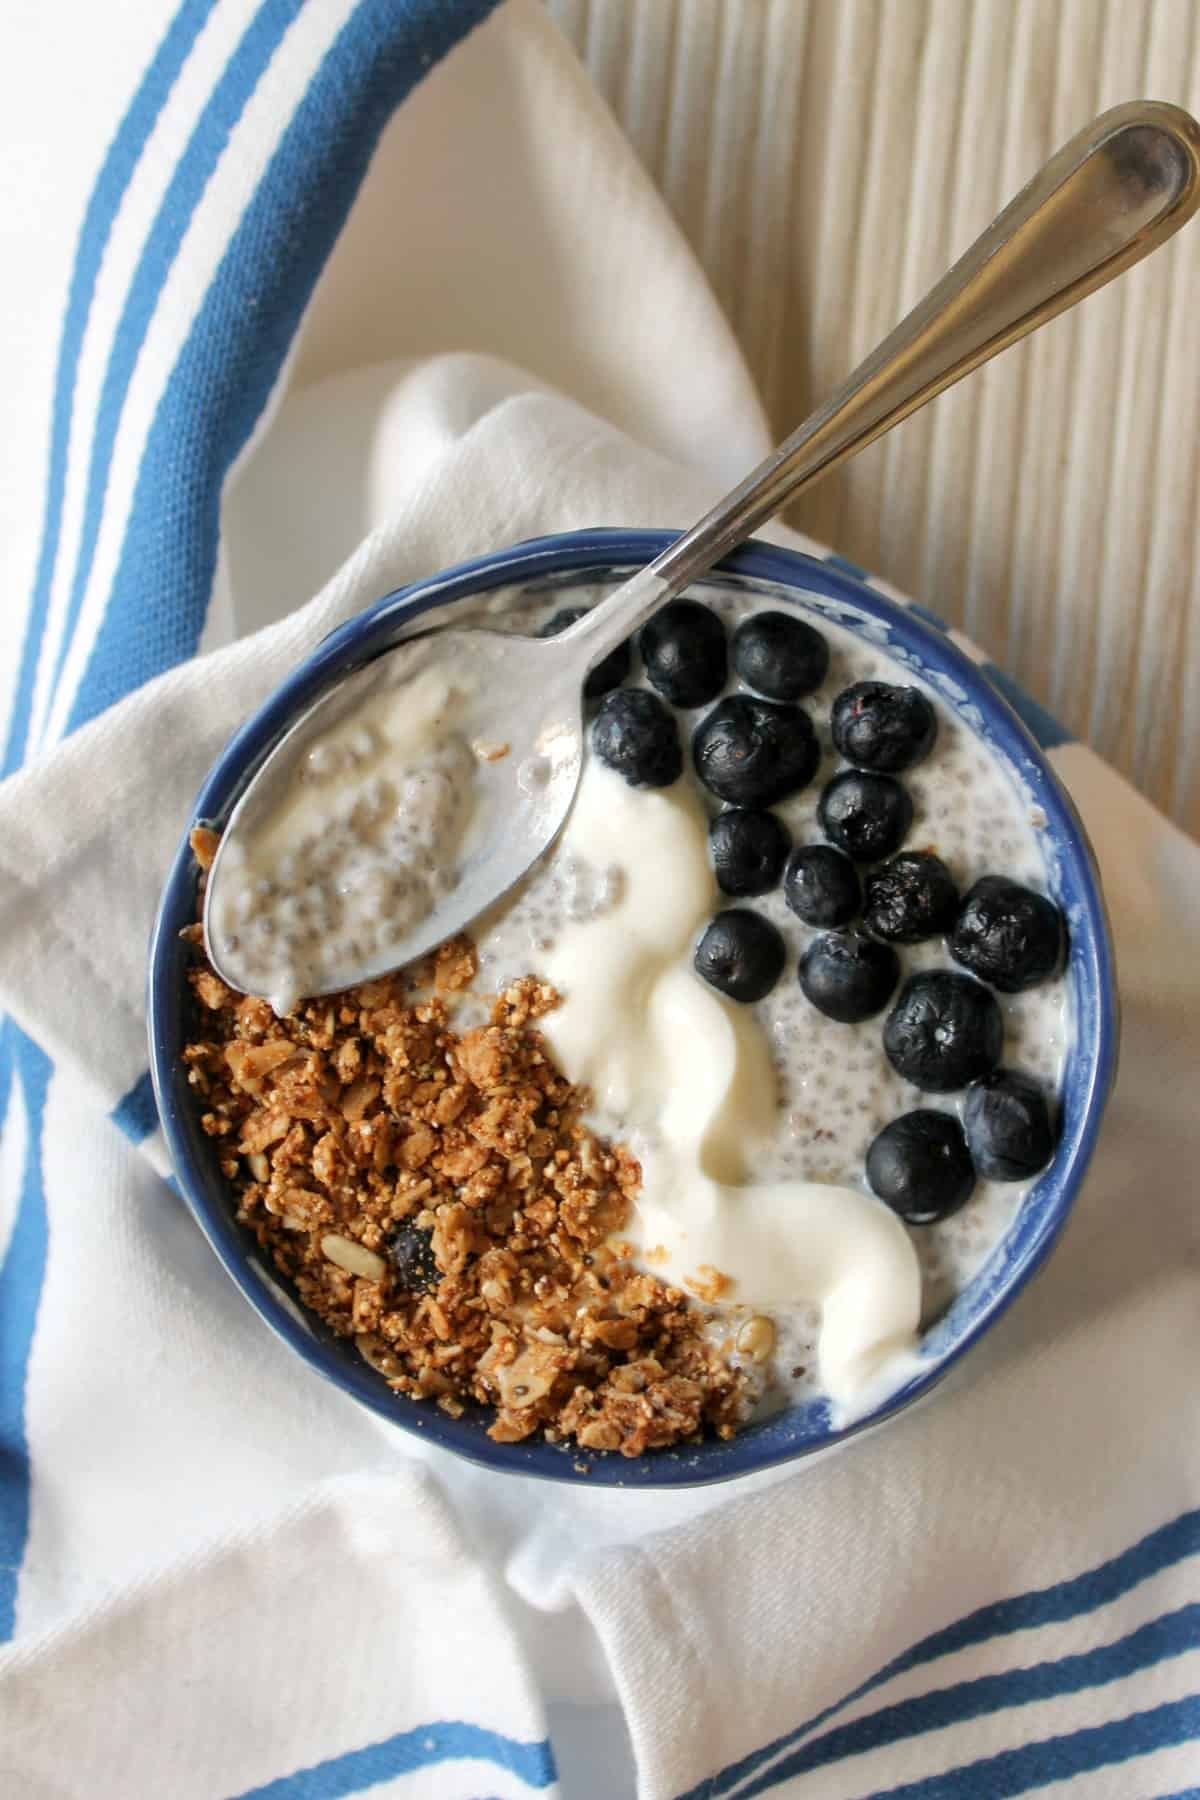 Blueberry-Ginger Chia Pudding -- brimming with nutritious qualities, chia pudding may just become your go-to breakfast or snack! This version is infused with ginger flavor and topped with berries, crunchy granola and a swirl of creamy yogurt.